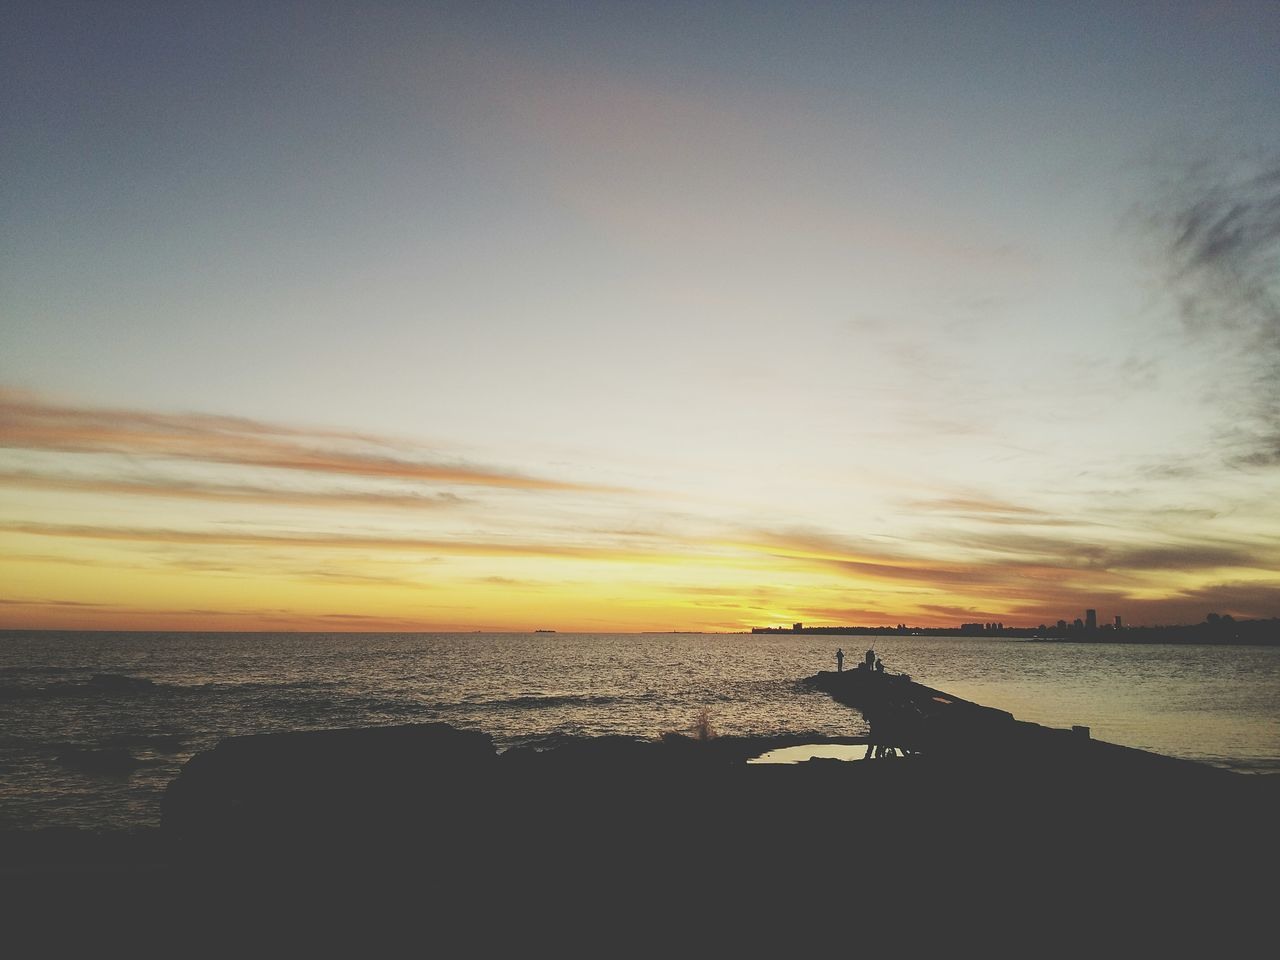 End of day (fin del día) Taking Photos EyeEm Best Shots Photo Photography Eye4photography  Samsung Afternoon Likeforlike Moments Capture The Moment EyeEm Deceptively Simple I Love My City Enjoying Life Coastline Sunset Relaxing